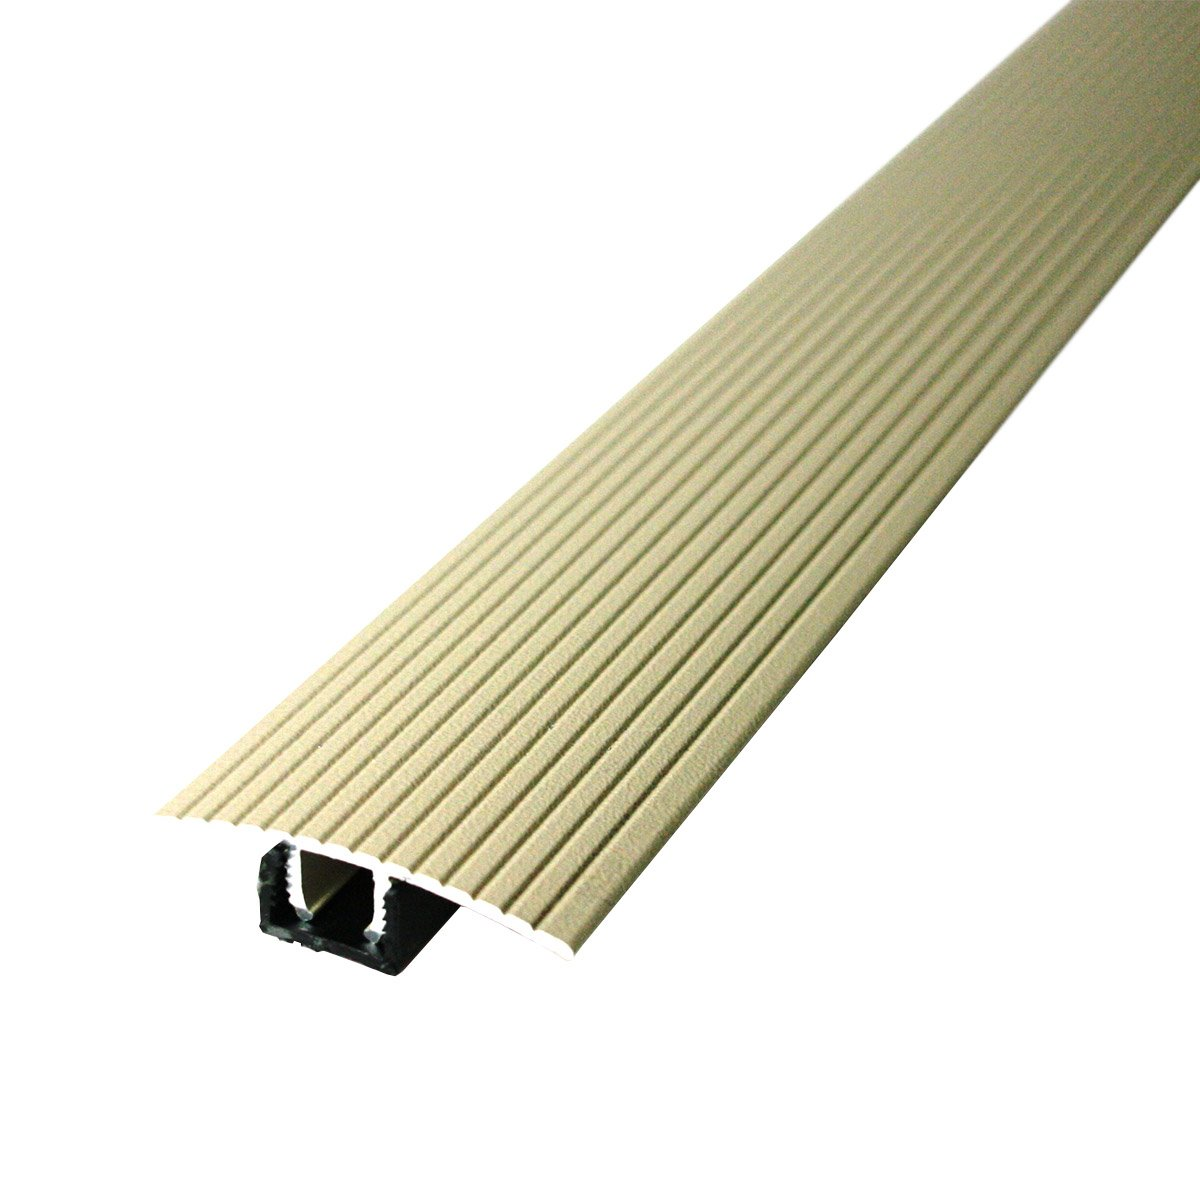 M-D Building Products Cinch T-Molding w/SnapTrack (Fluted) 36'' Beige Beige